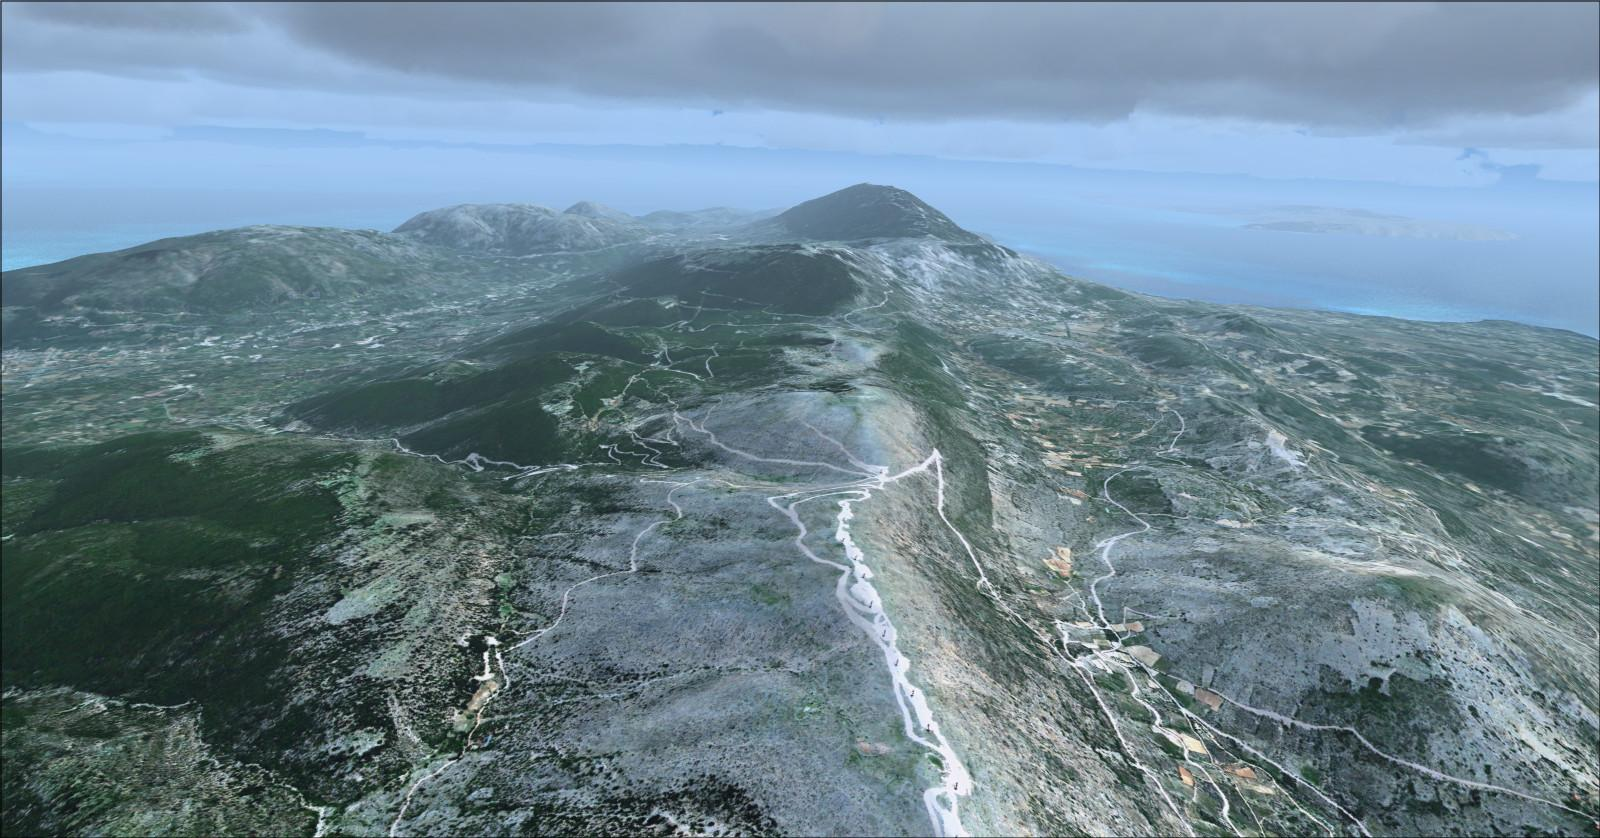 Fs2004 Scenery Images - Reverse Search